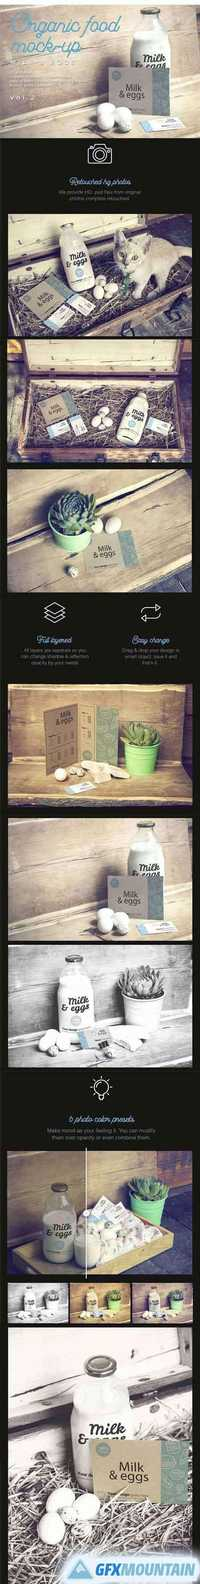 Organic Food Photo Mockup Milk & Eggs Vol.2